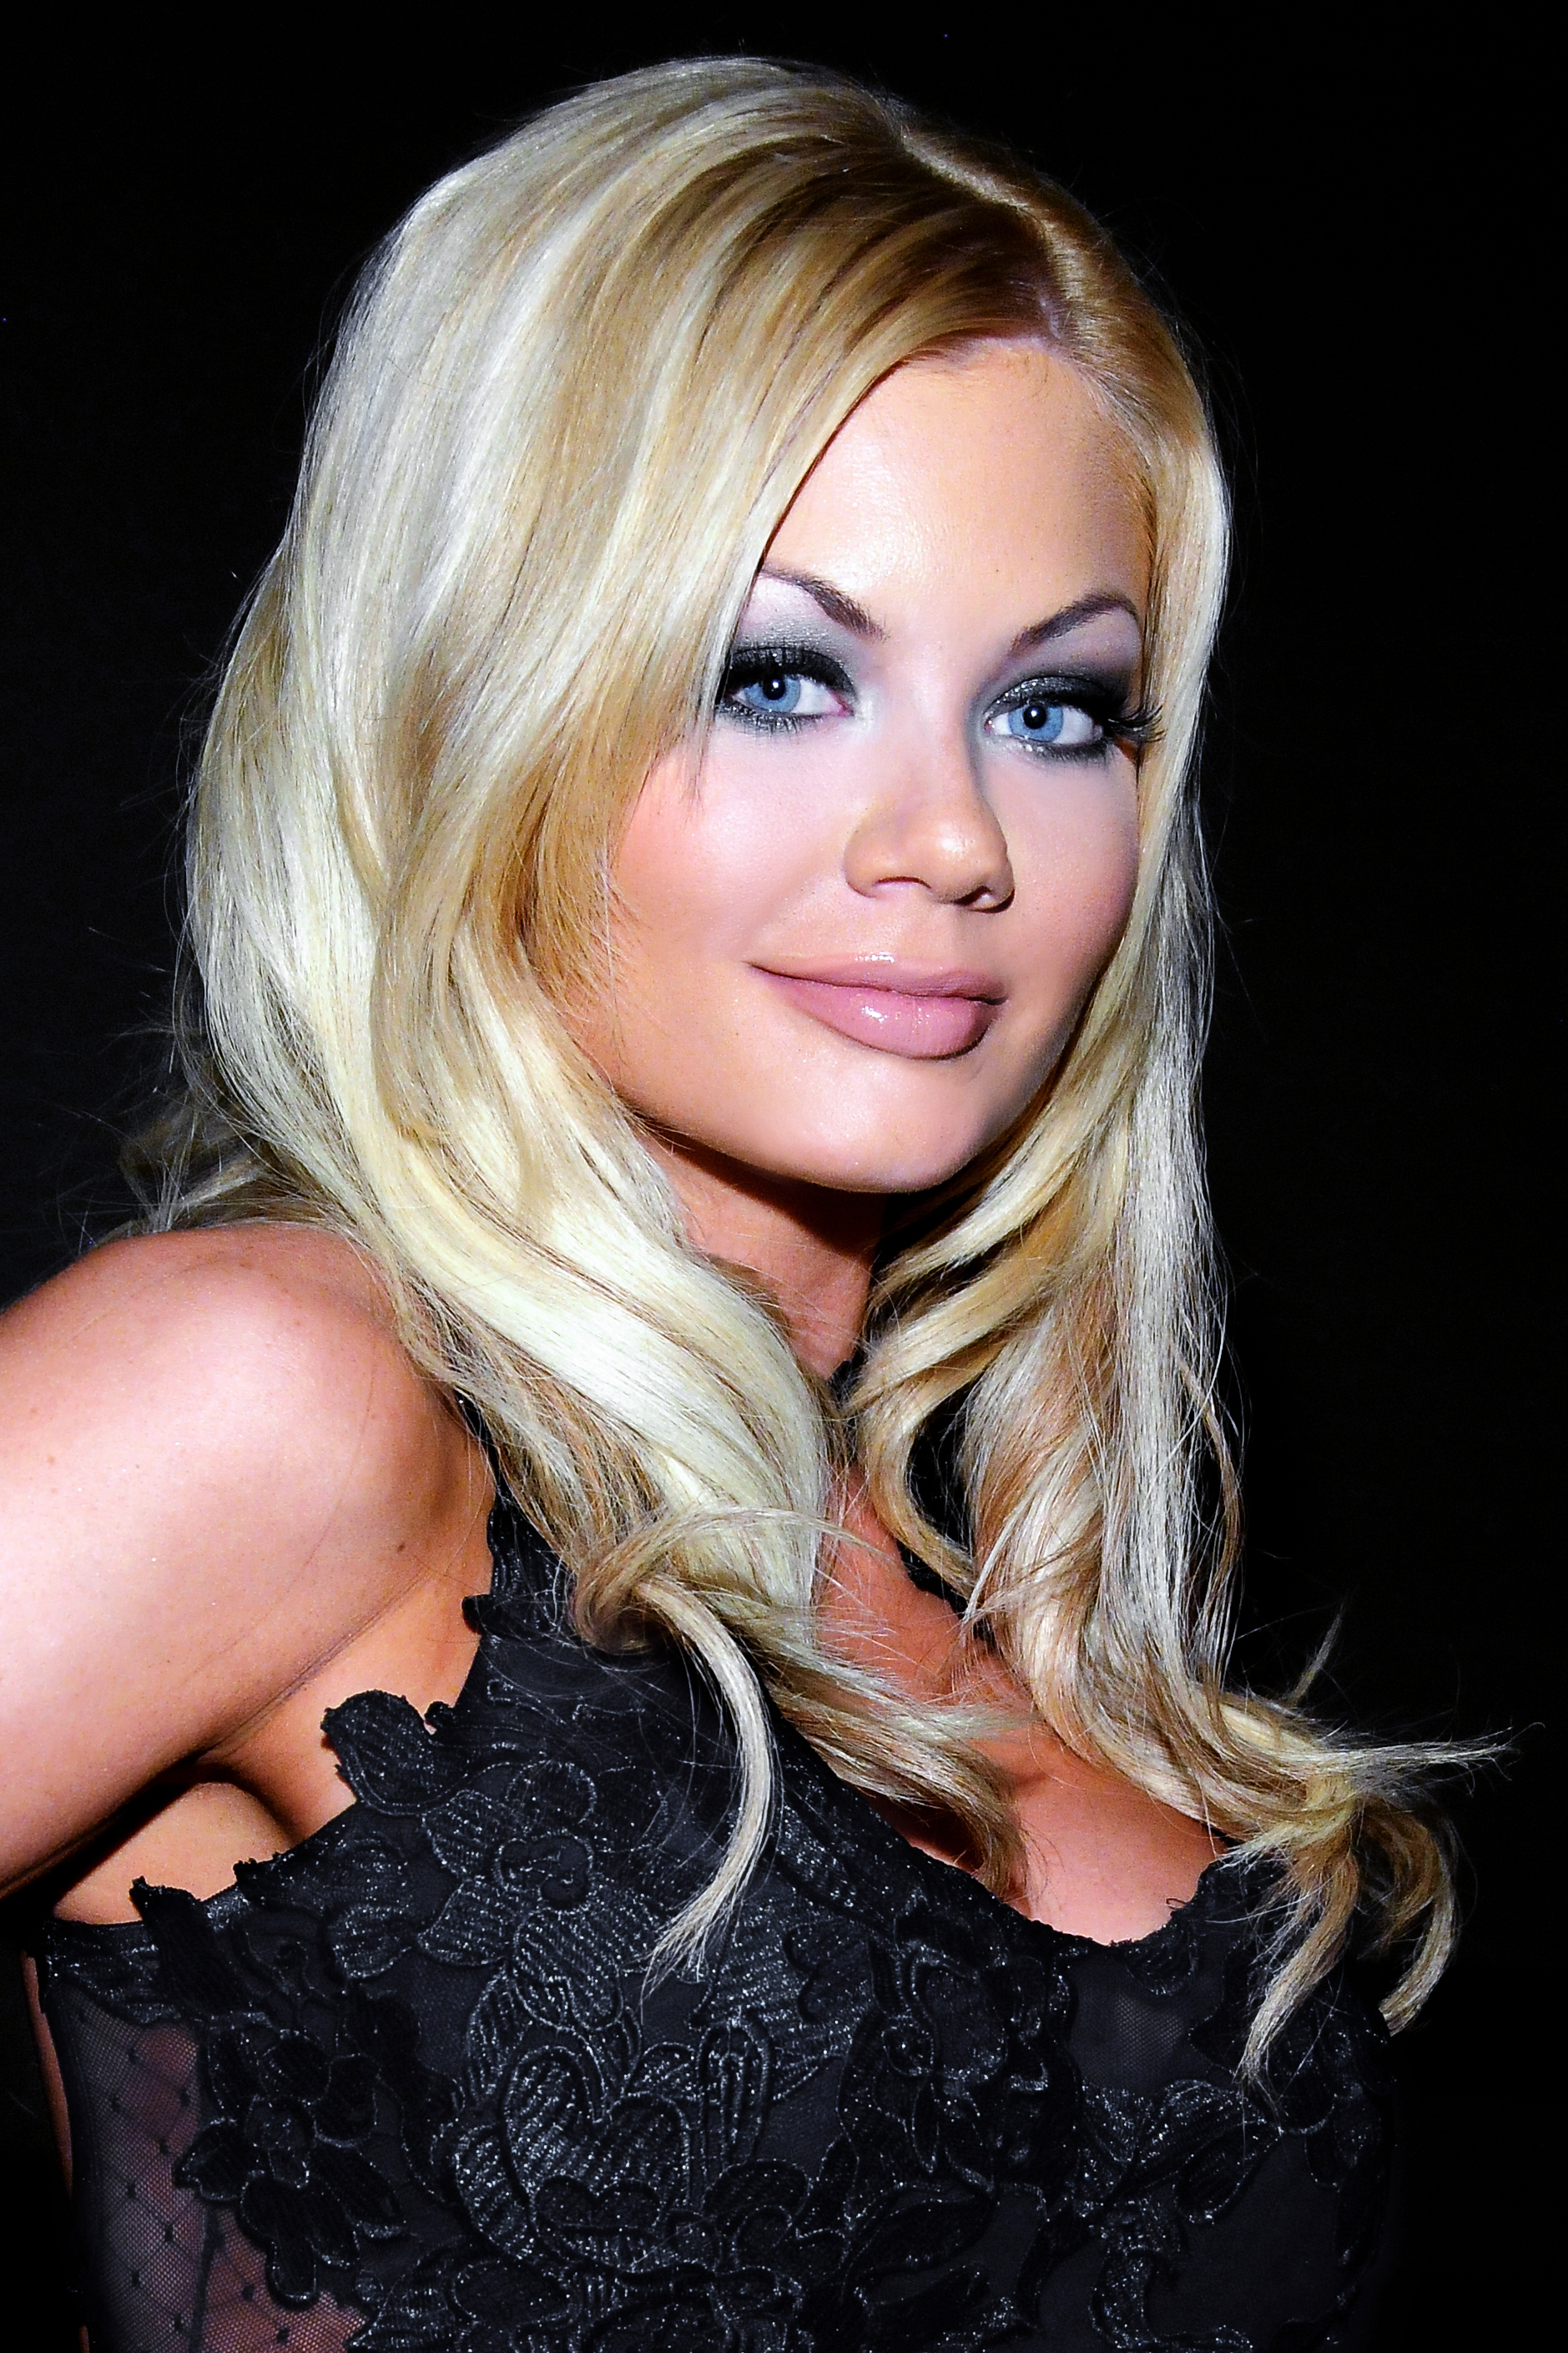 Jesse Jane Riley Steele nackt